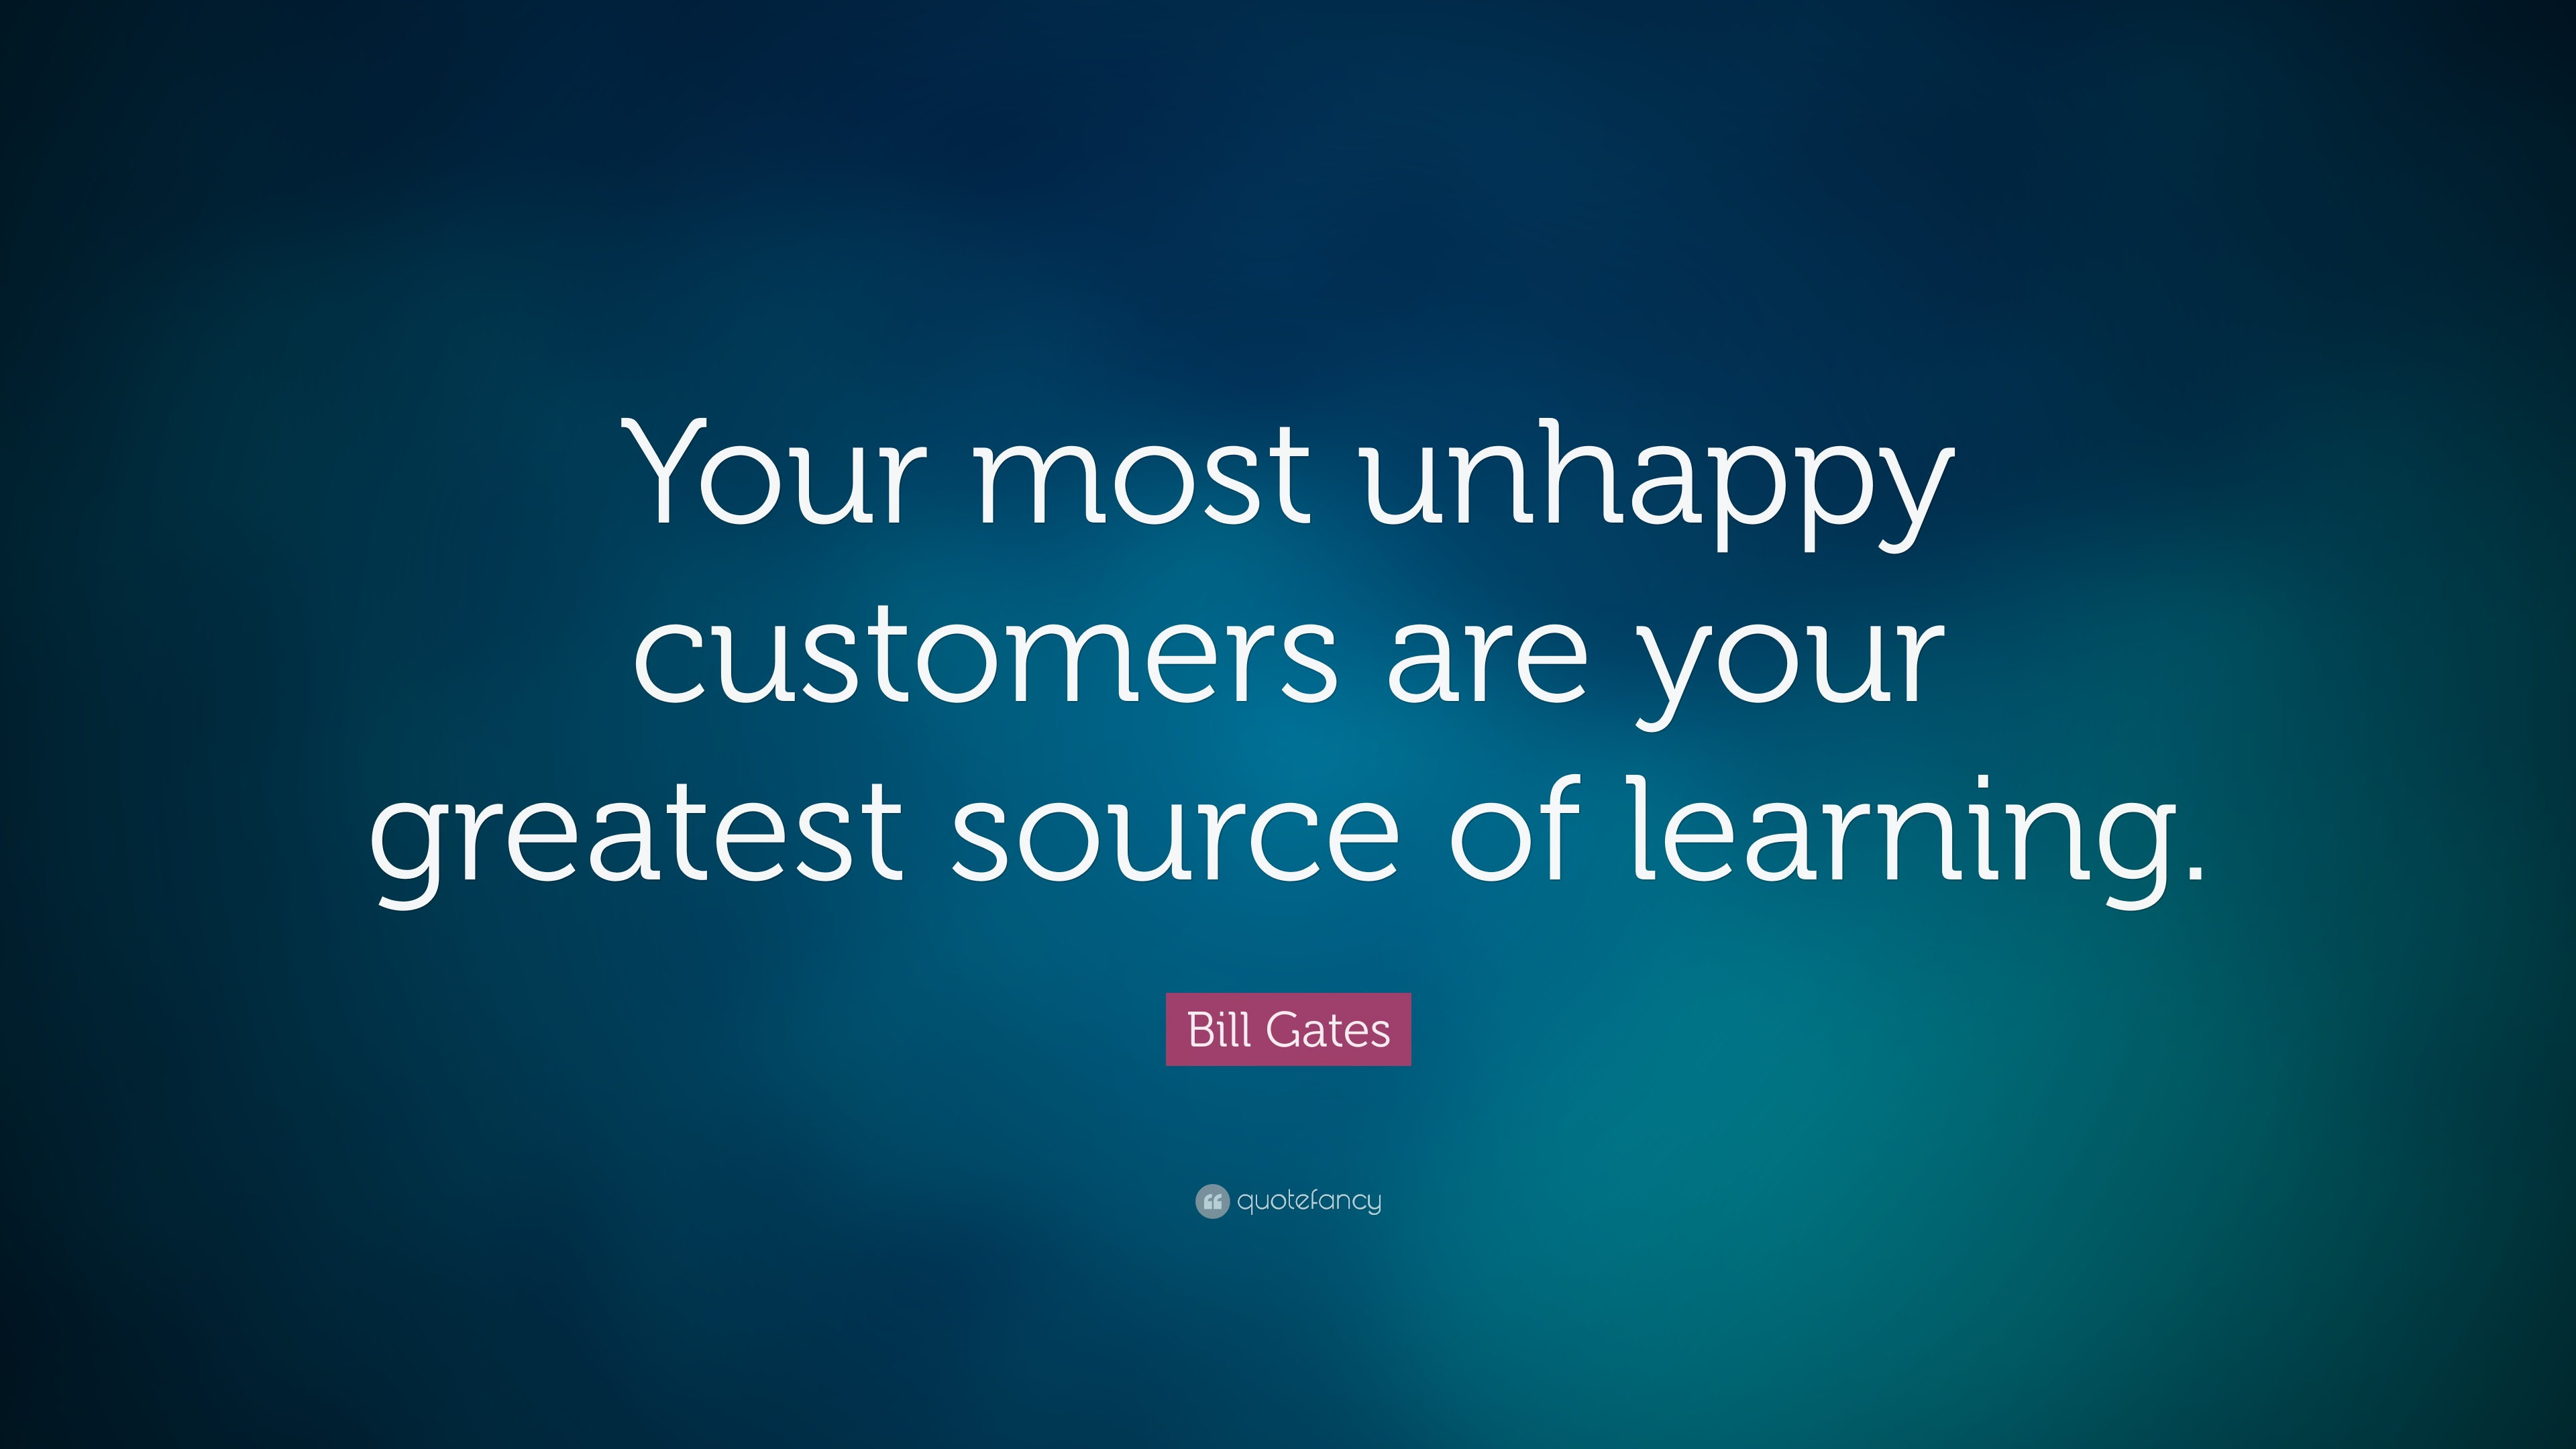 Bill Gates Quotes On Success Wallpaper Bill Gates Quote Your Most Unhappy Customers Are Your